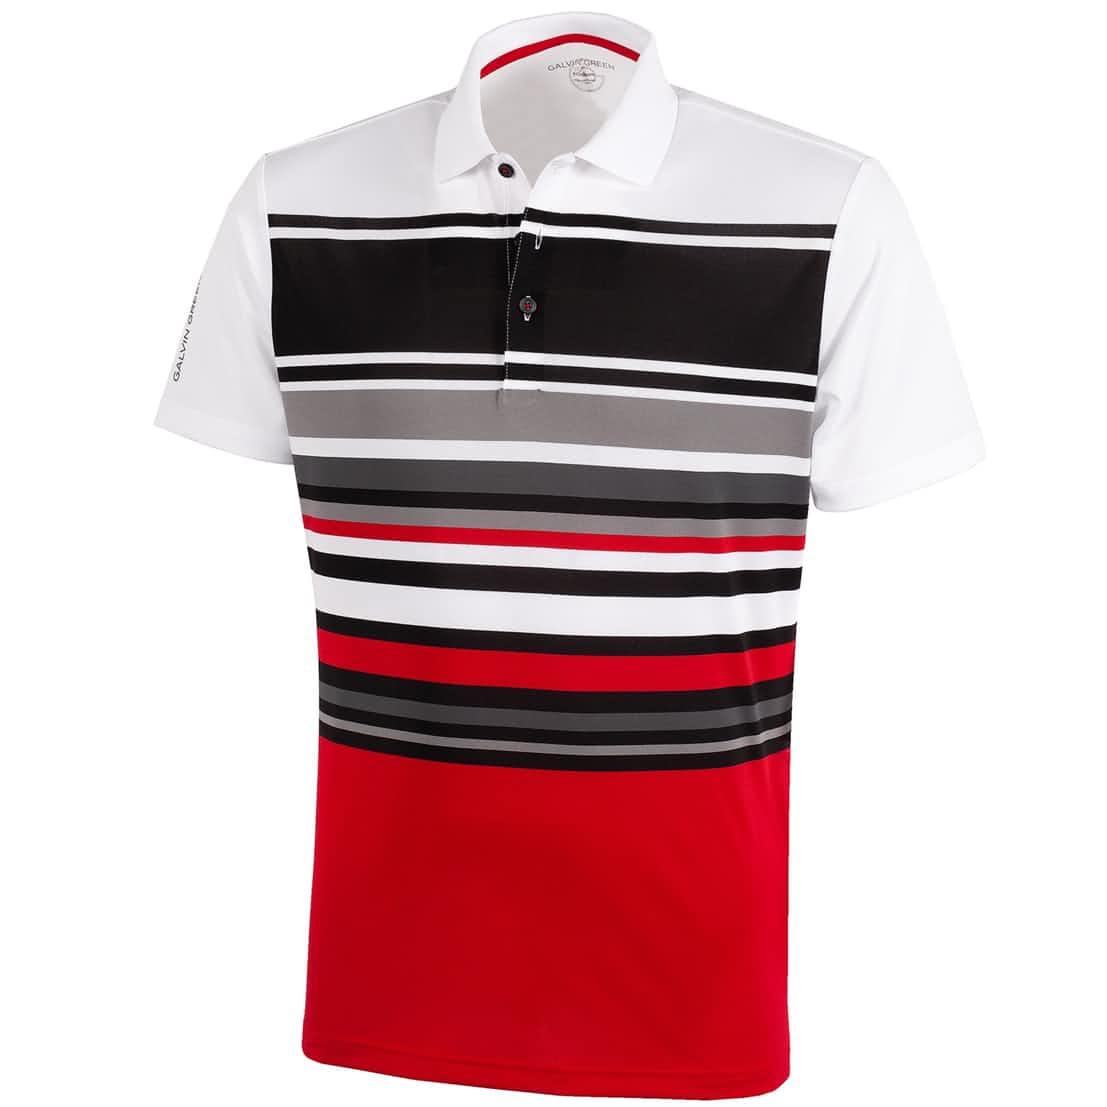 Miguel Ventil8+ Polo White/Red/Sharkskin - 2020